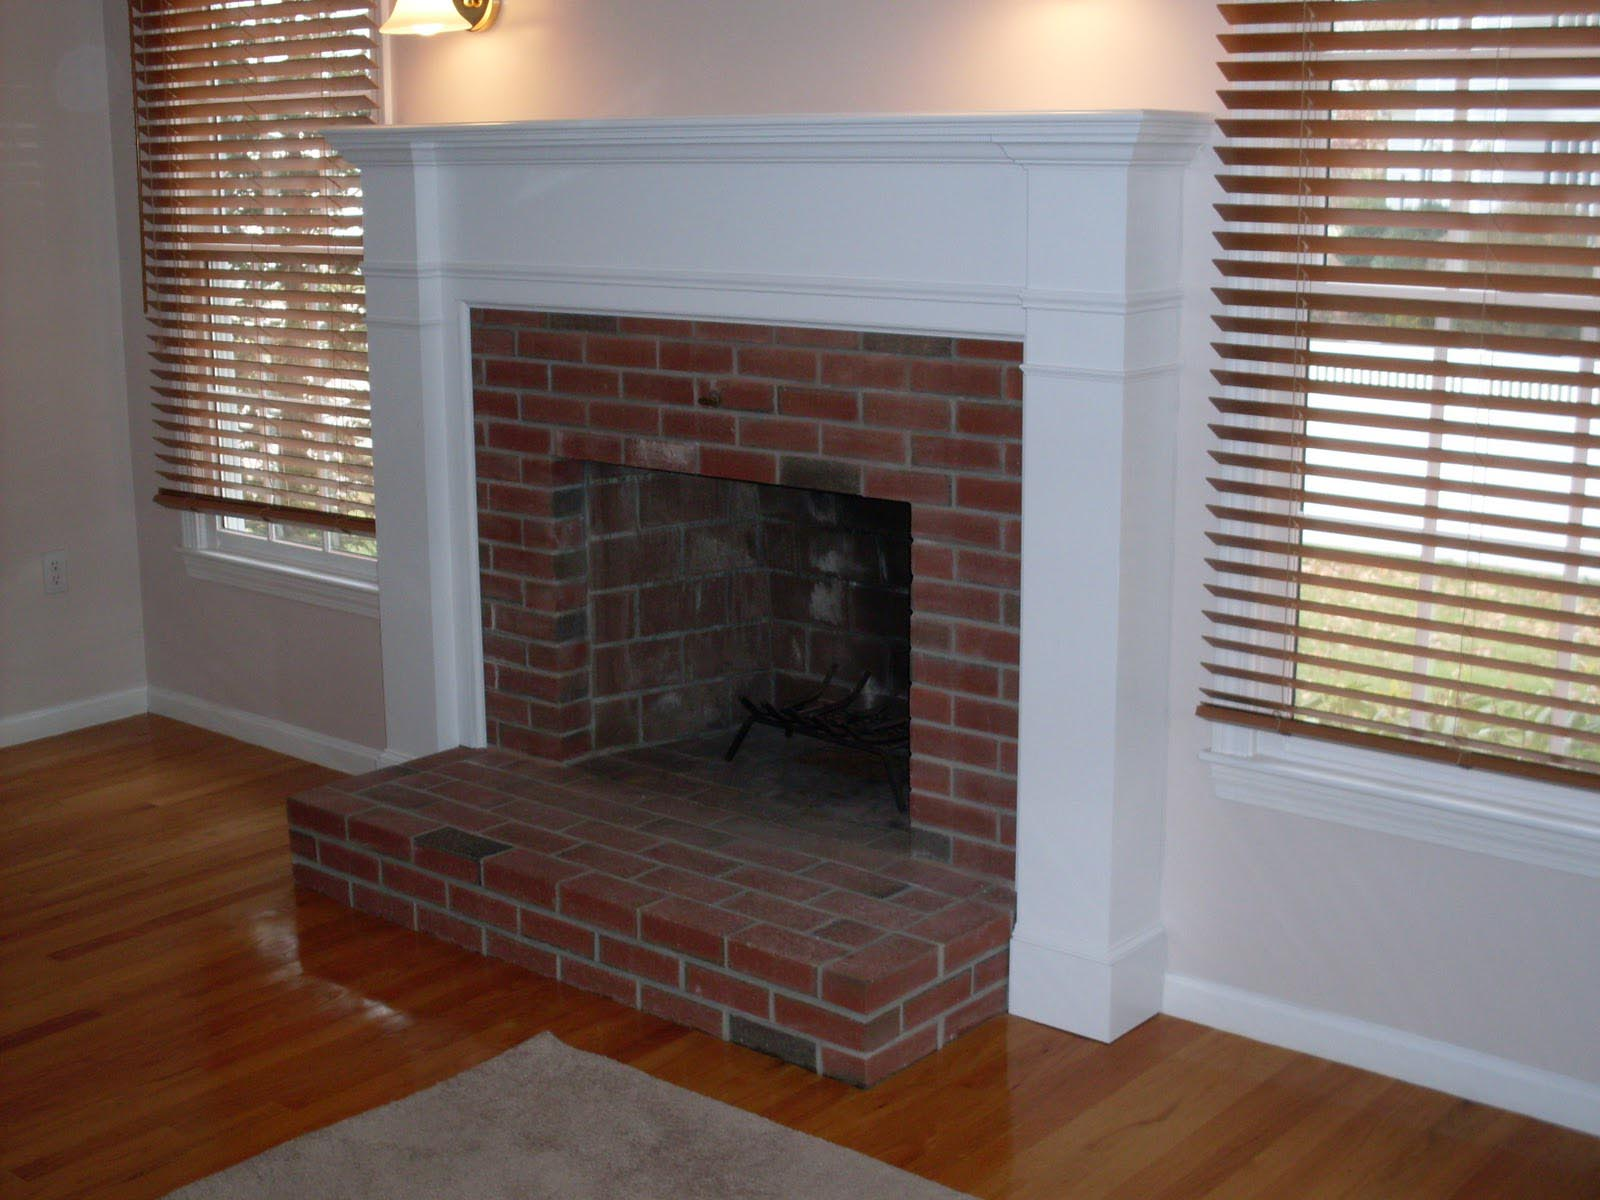 How to build a wood fireplace surround fireplace designs for Wood fireplace surround designs